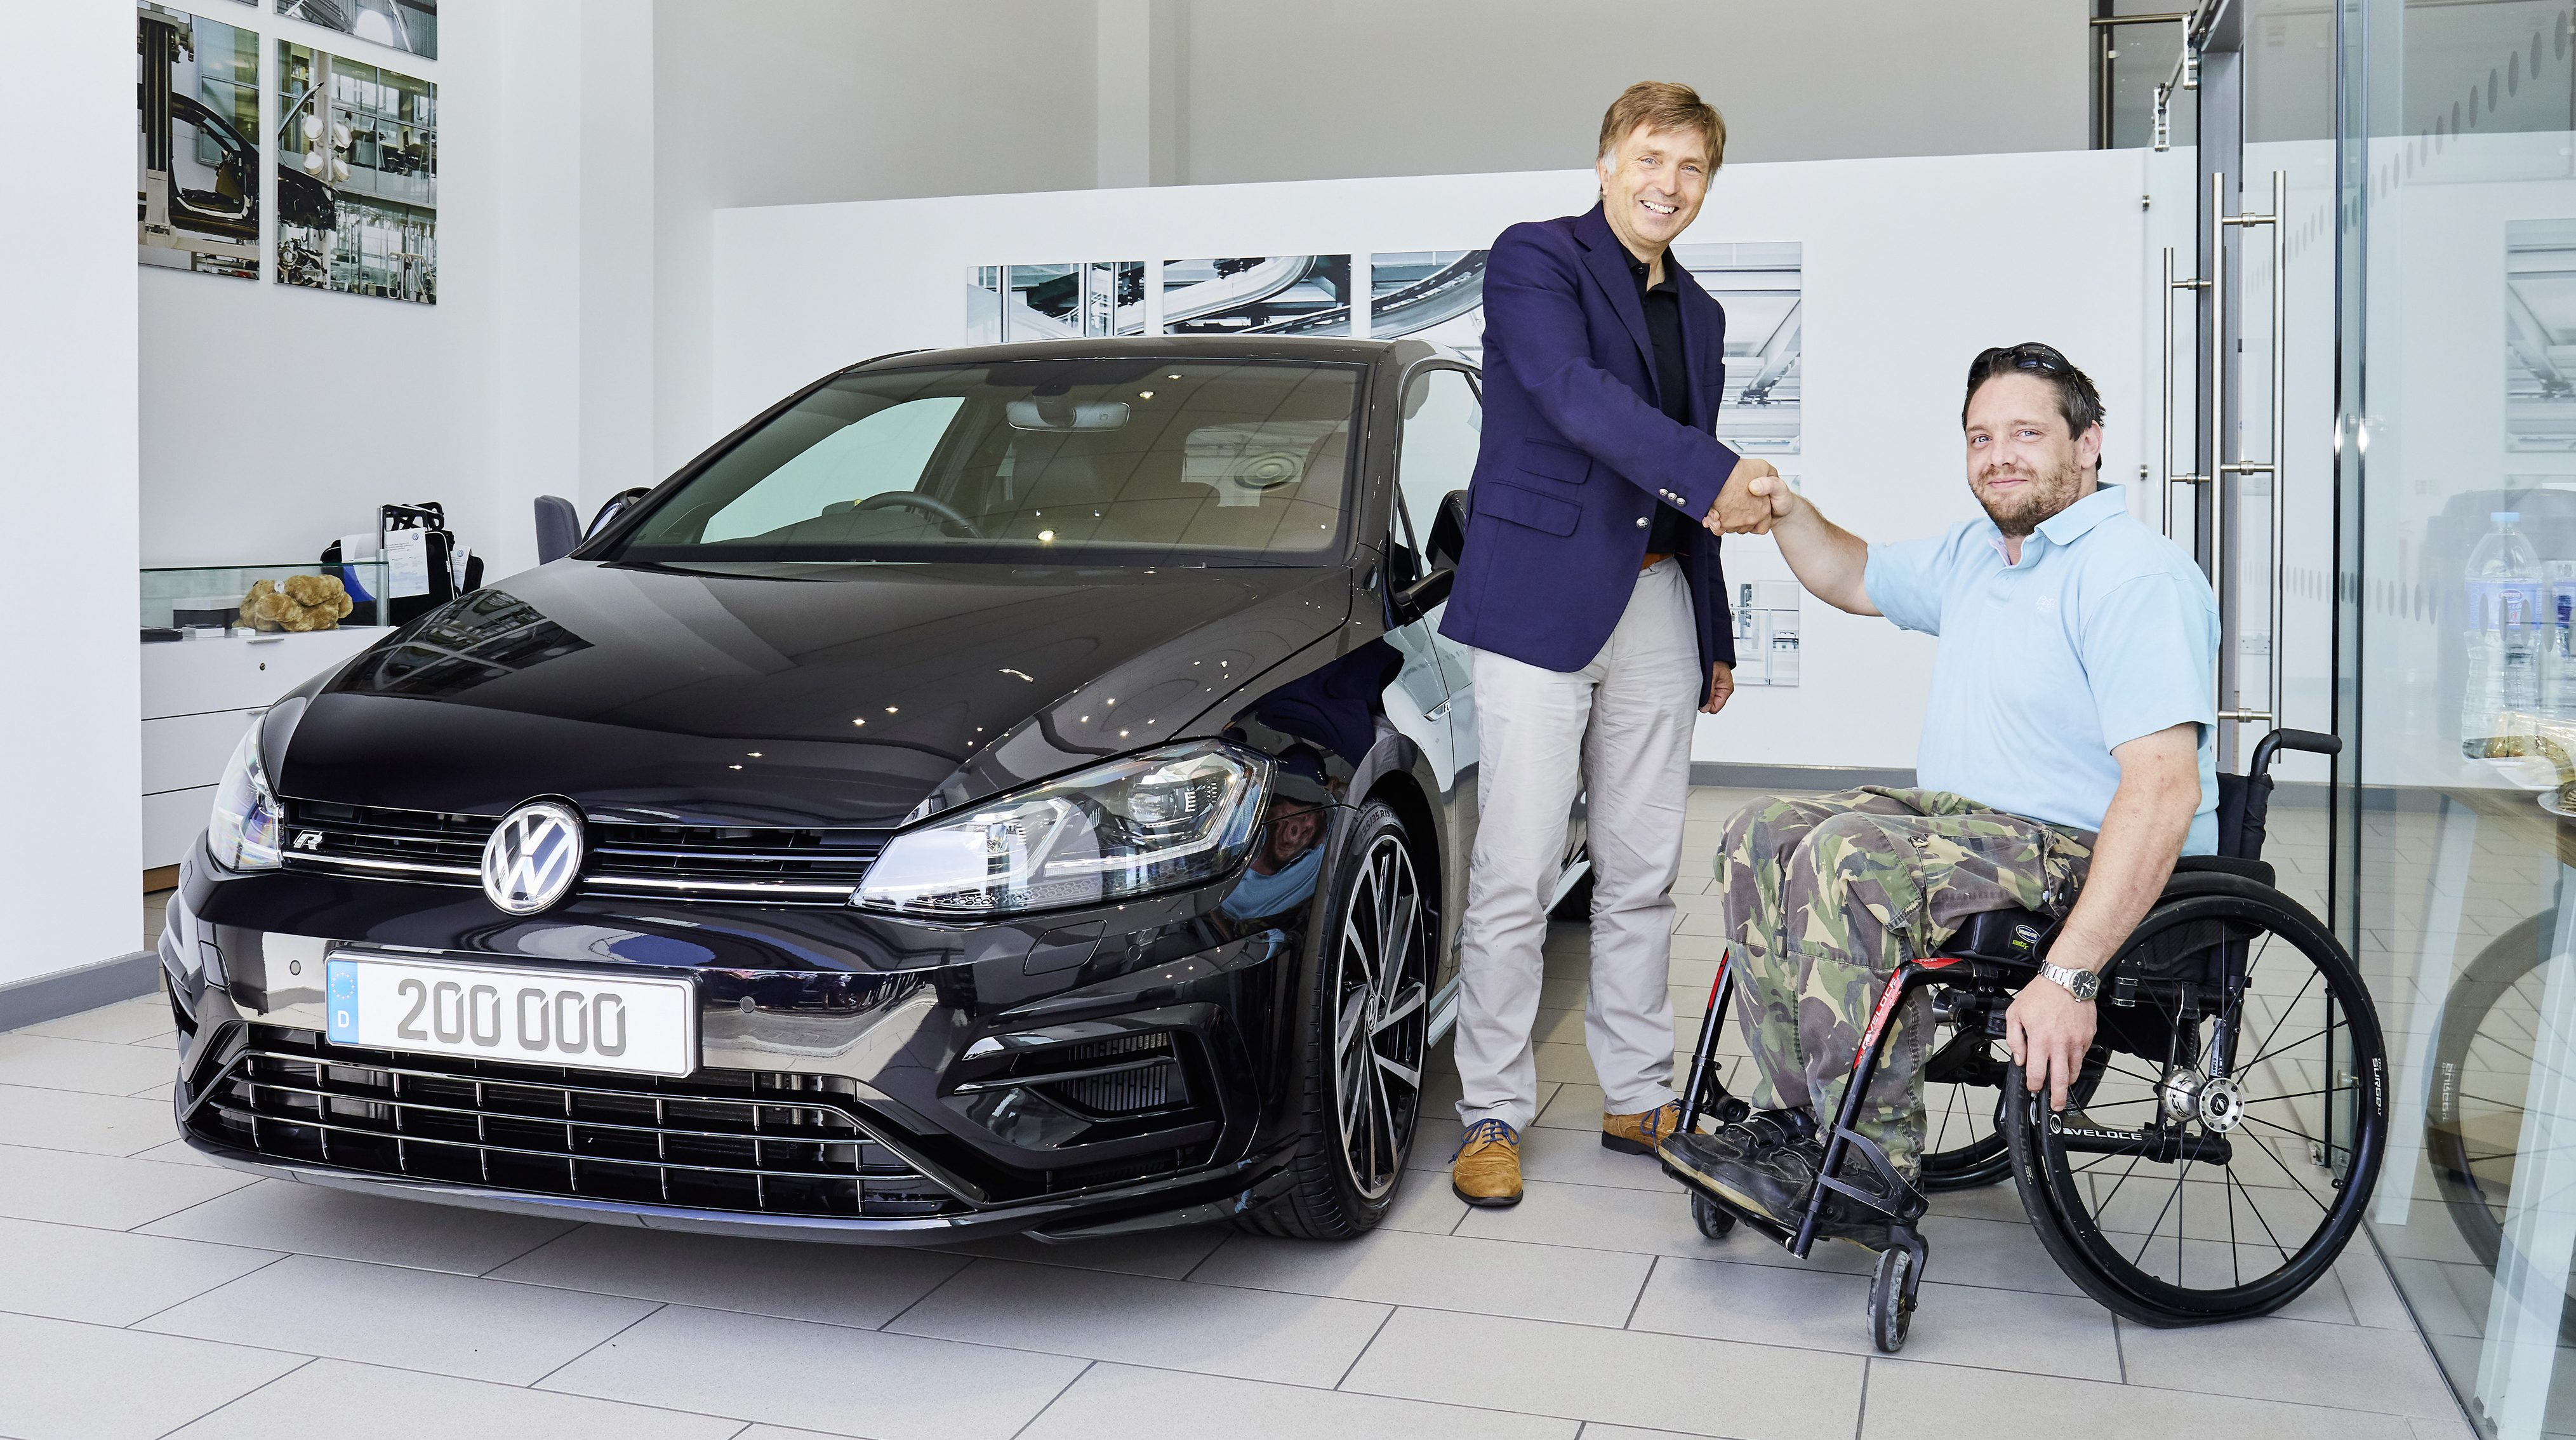 The 200,000th VW R model is a Golf R with the optional Performance Pack and Akrapovič exhaust system, with the owner being a long-time Volkswagen customer who has a Mk IV Golf R32 and a Mk V Golf GTI in his collection.